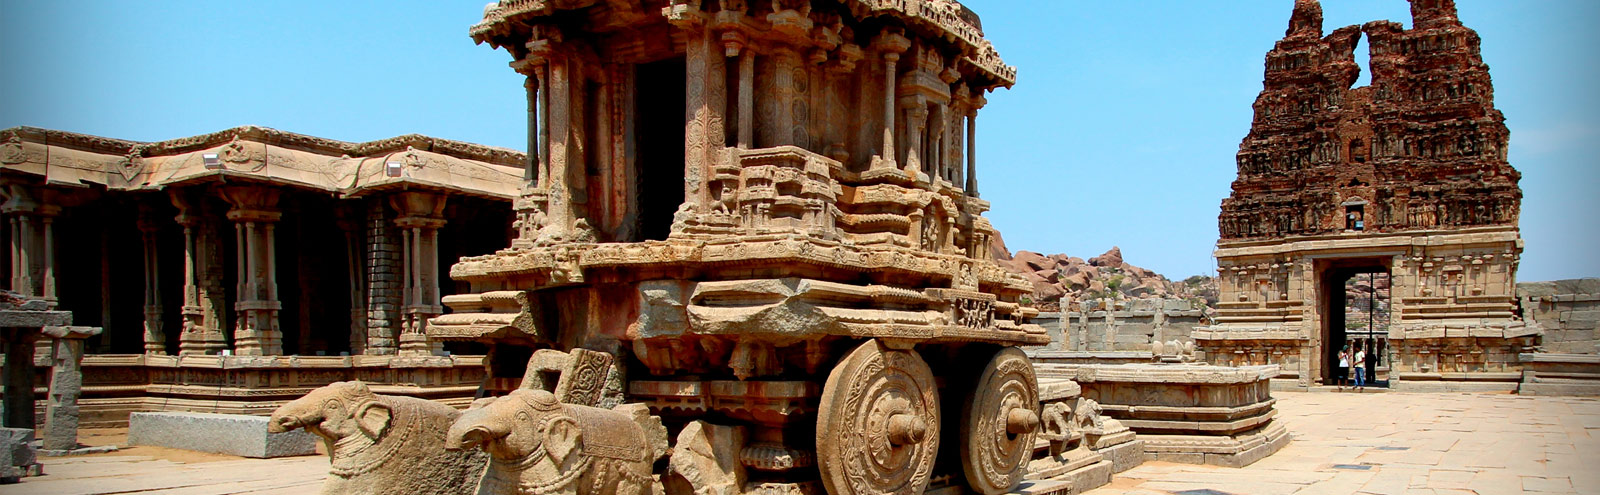 Hampi Temple journey by The Southern Jewels India